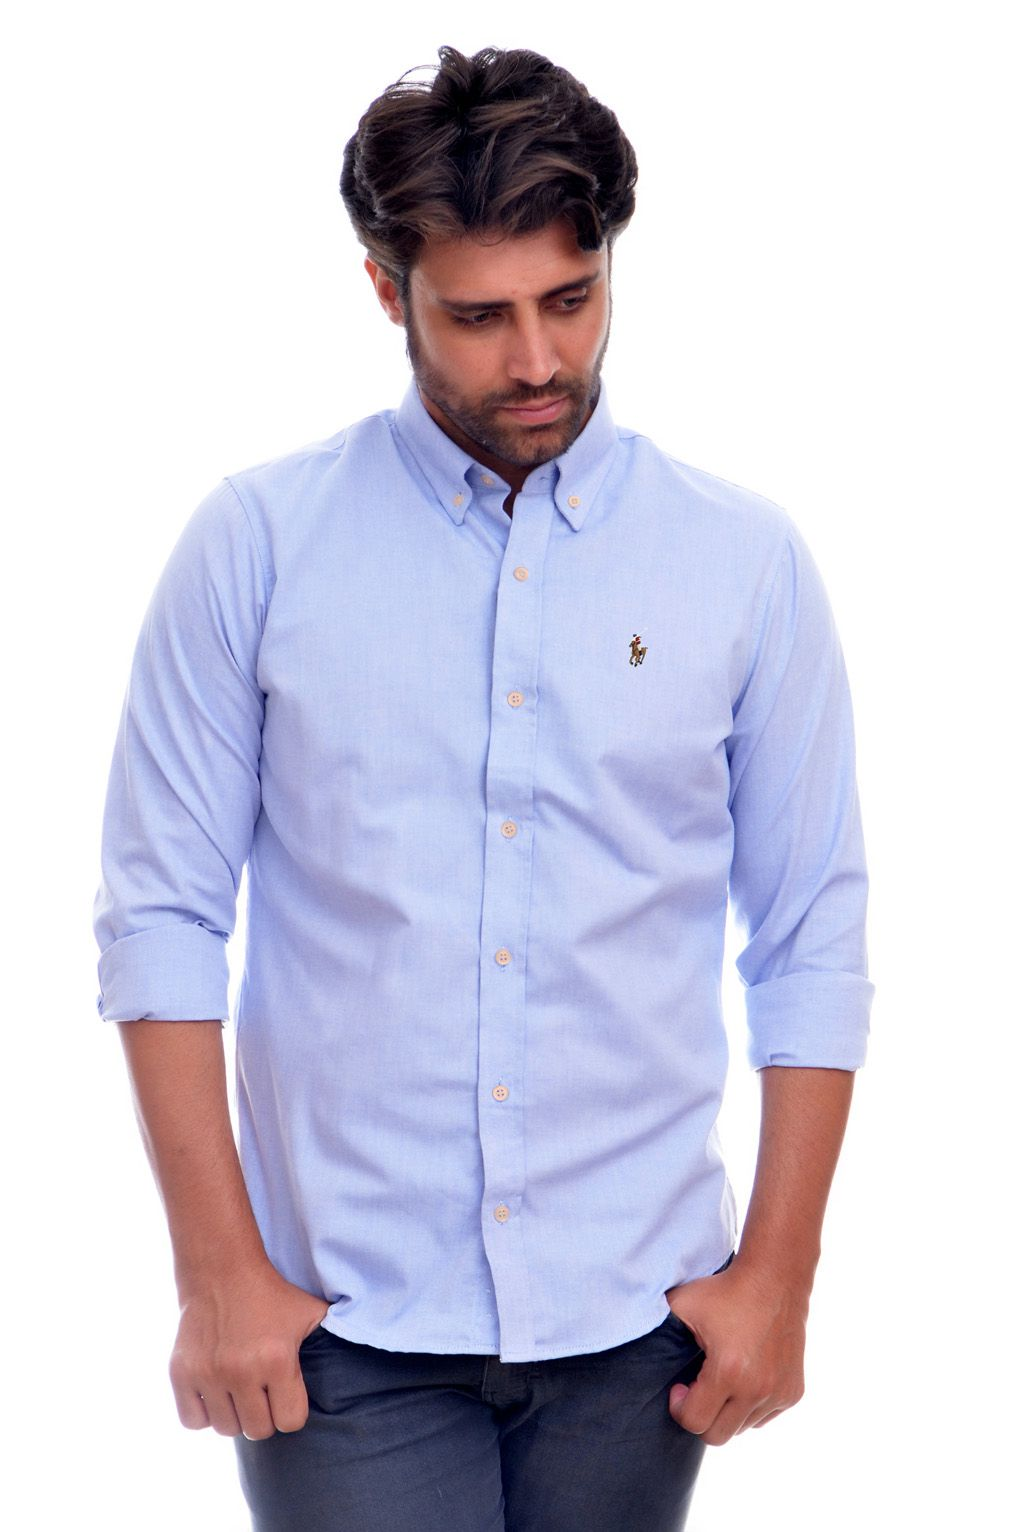 Camisa Social RL Oxford Azul Claro Colored